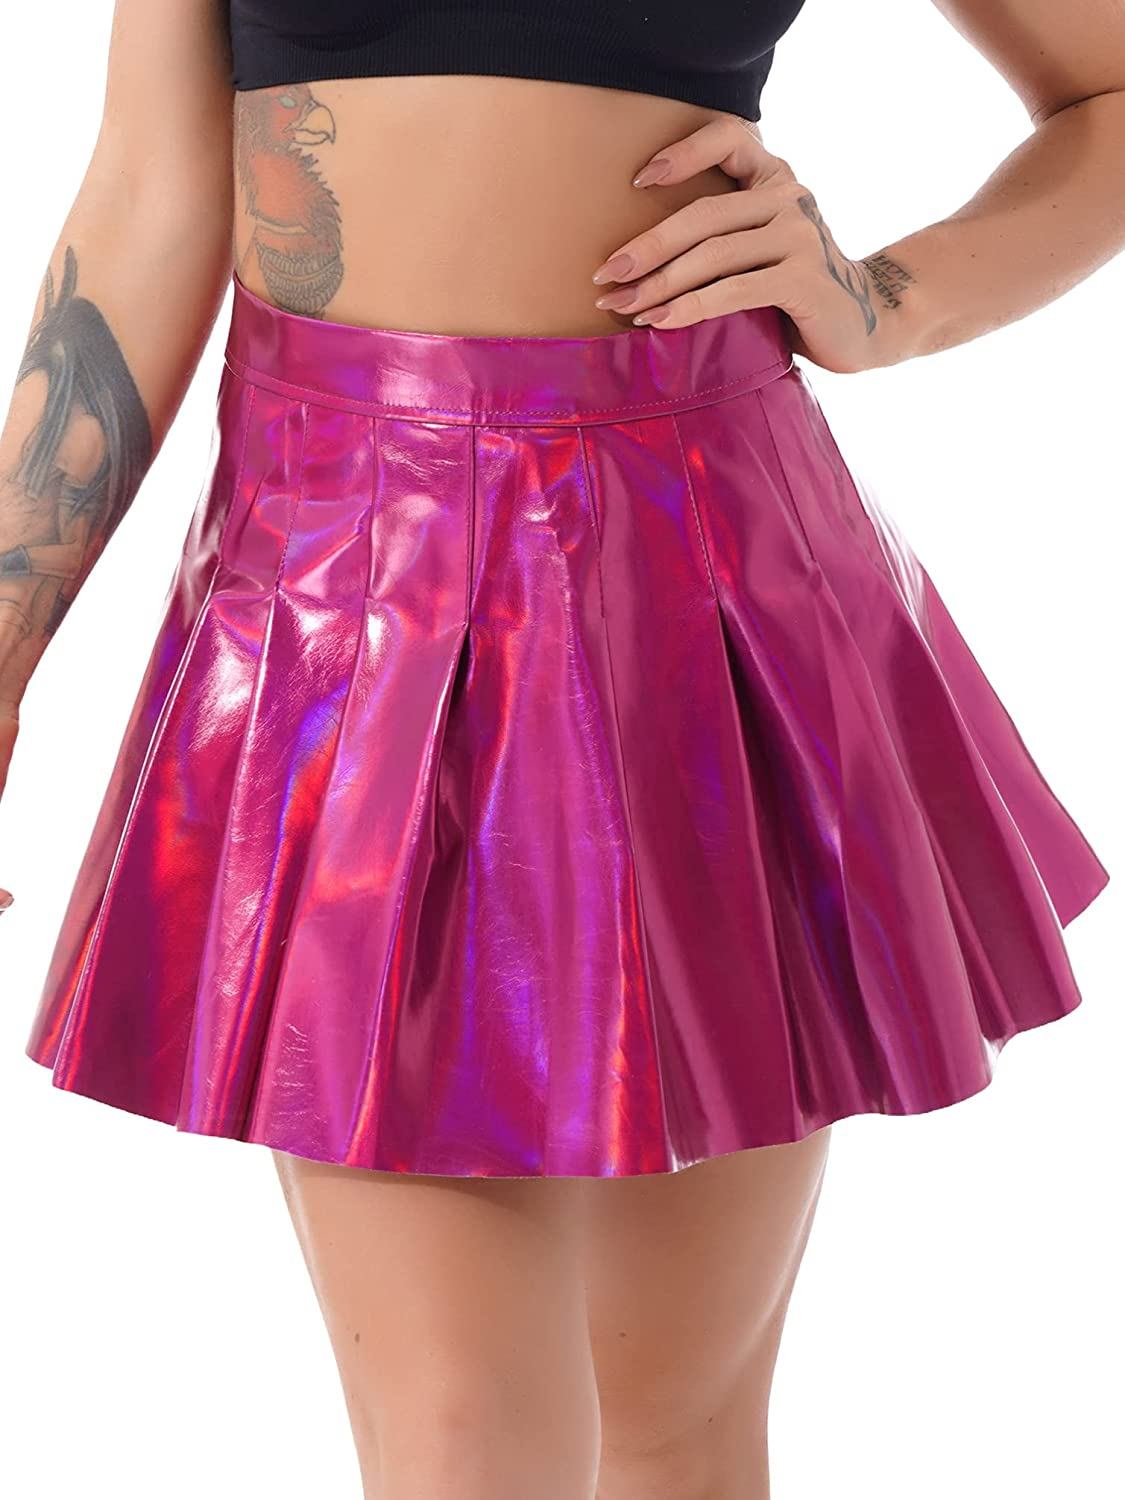 Moily Women's PU Leather Pleated Mini Skirt Versatile Stretchy Flared A-Line Circle Skater Skirt